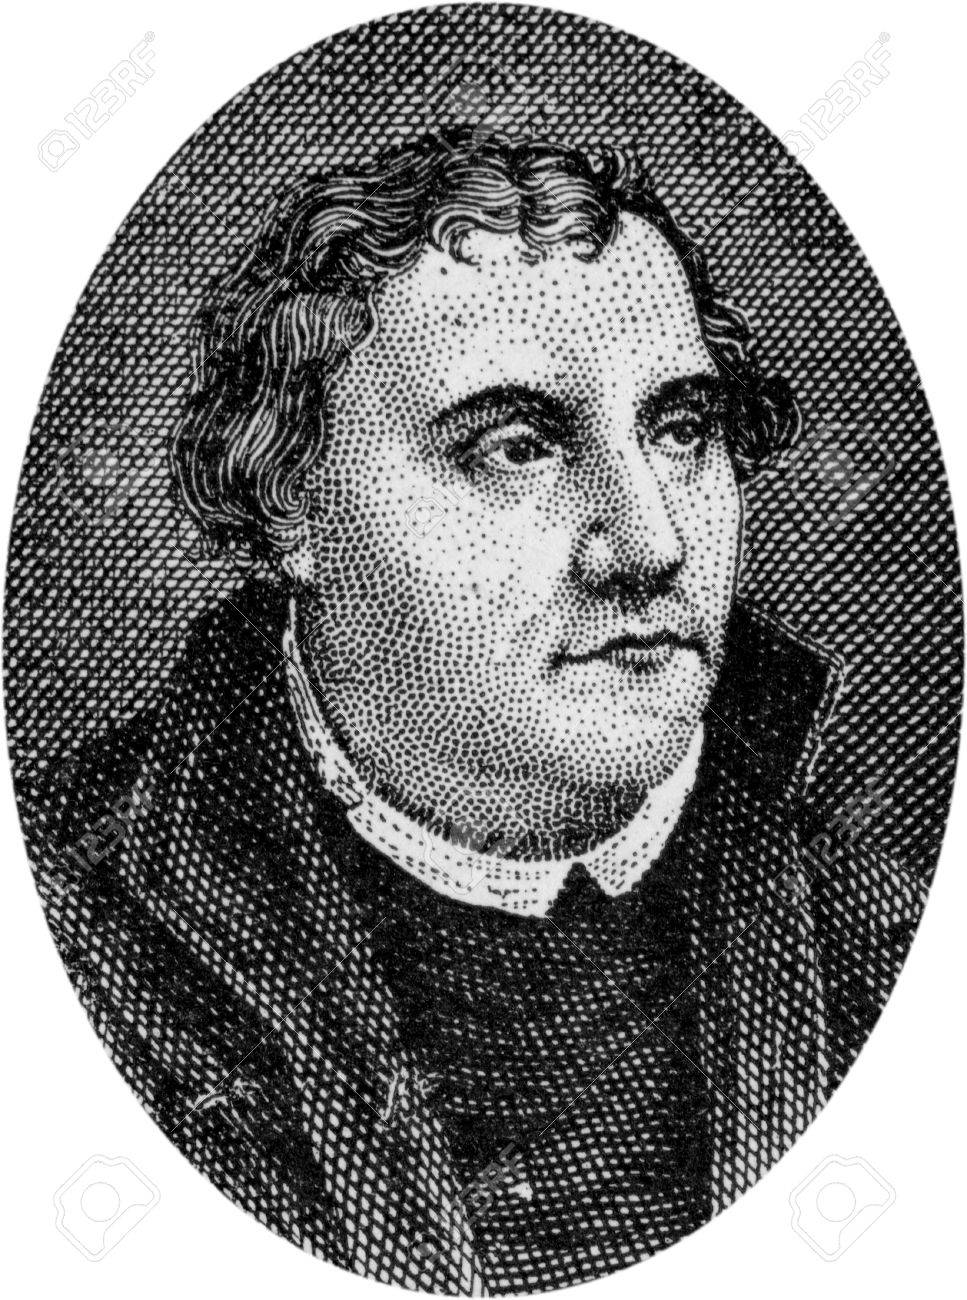 Engraving of Martin Luther, 1483 - 1546, leader of the Reformation in  Germany,